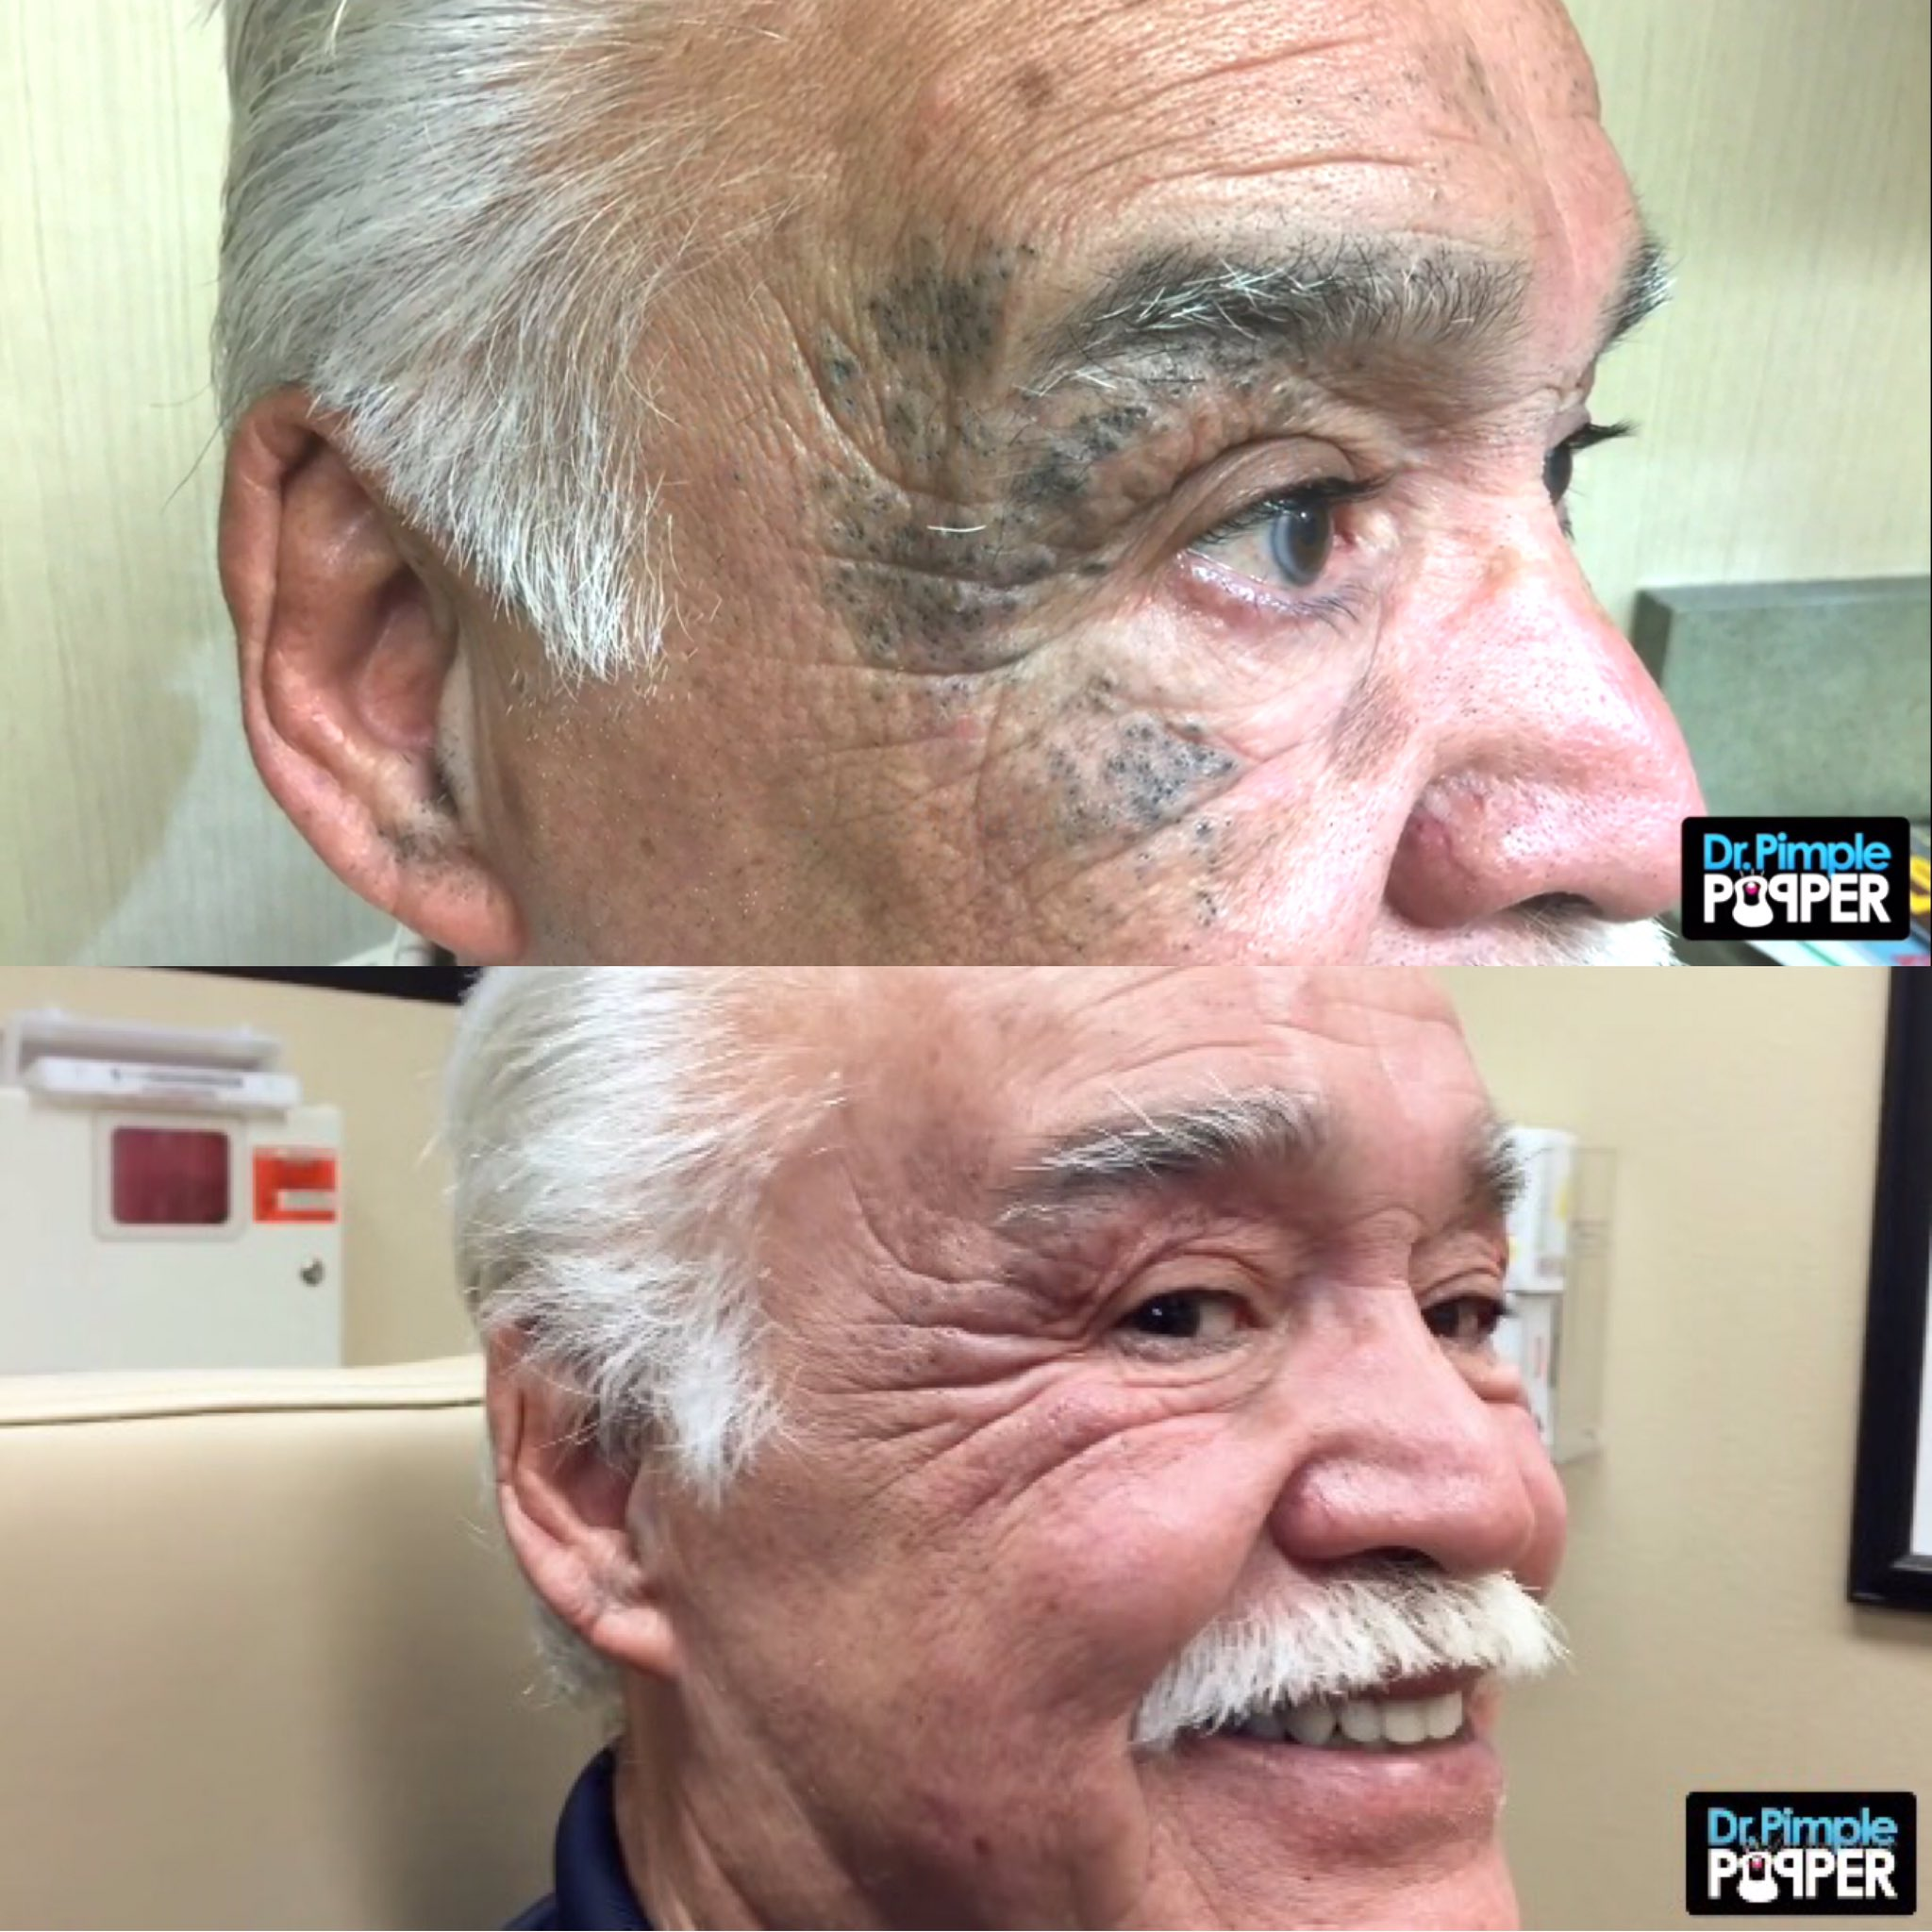 Dr Pimple Popper On Twitter Before After Of The Masked